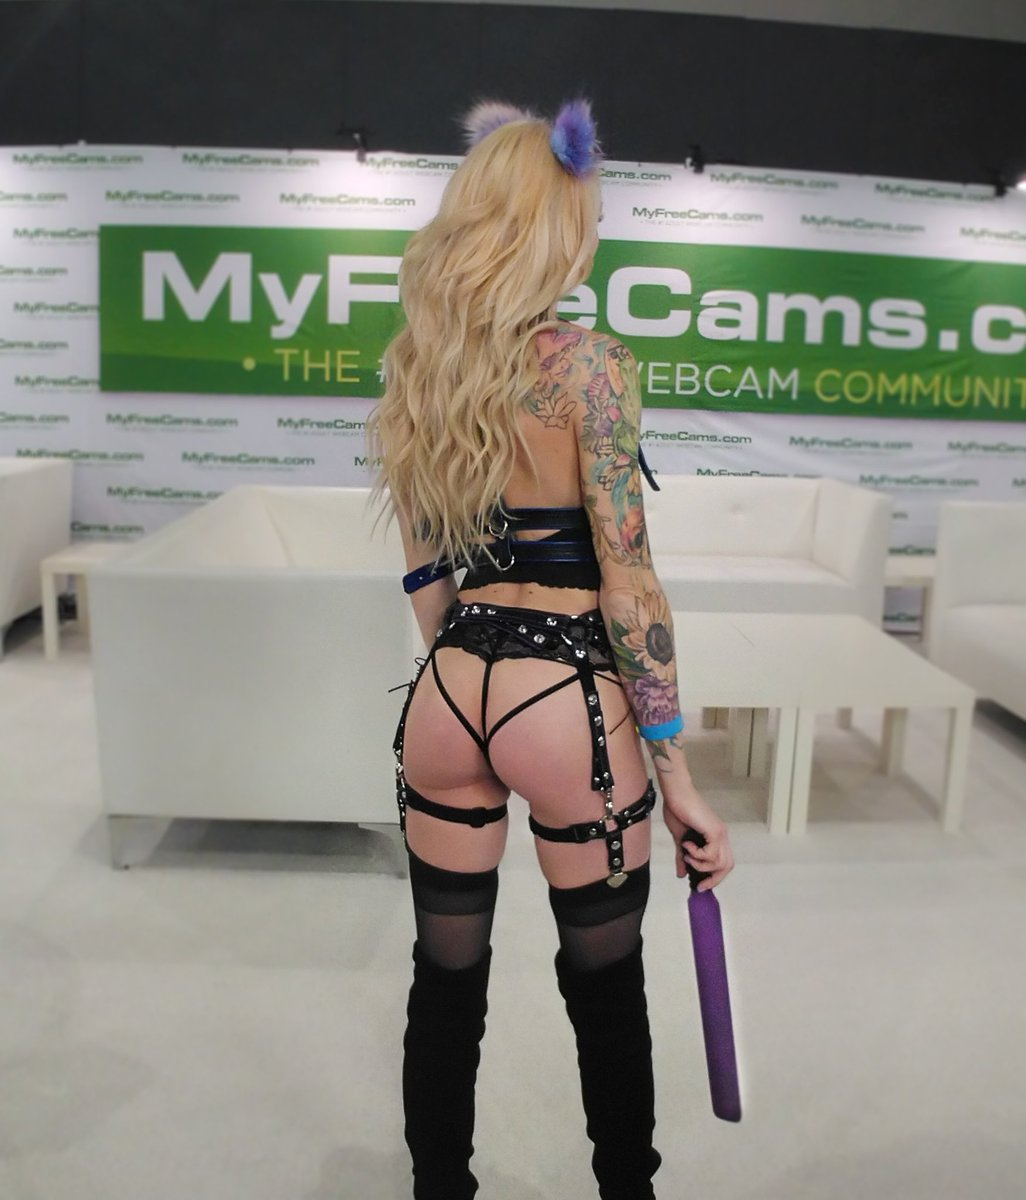 Had a lot of fun at the MFC booth at #adultconla!💕🖤 Leather harness, garter belt, ND collar from @LeatherDeviant #myfreecams #mfc #mfcshare #adultcon @MyFreeCams https://t.co/cJsjQTiB0t